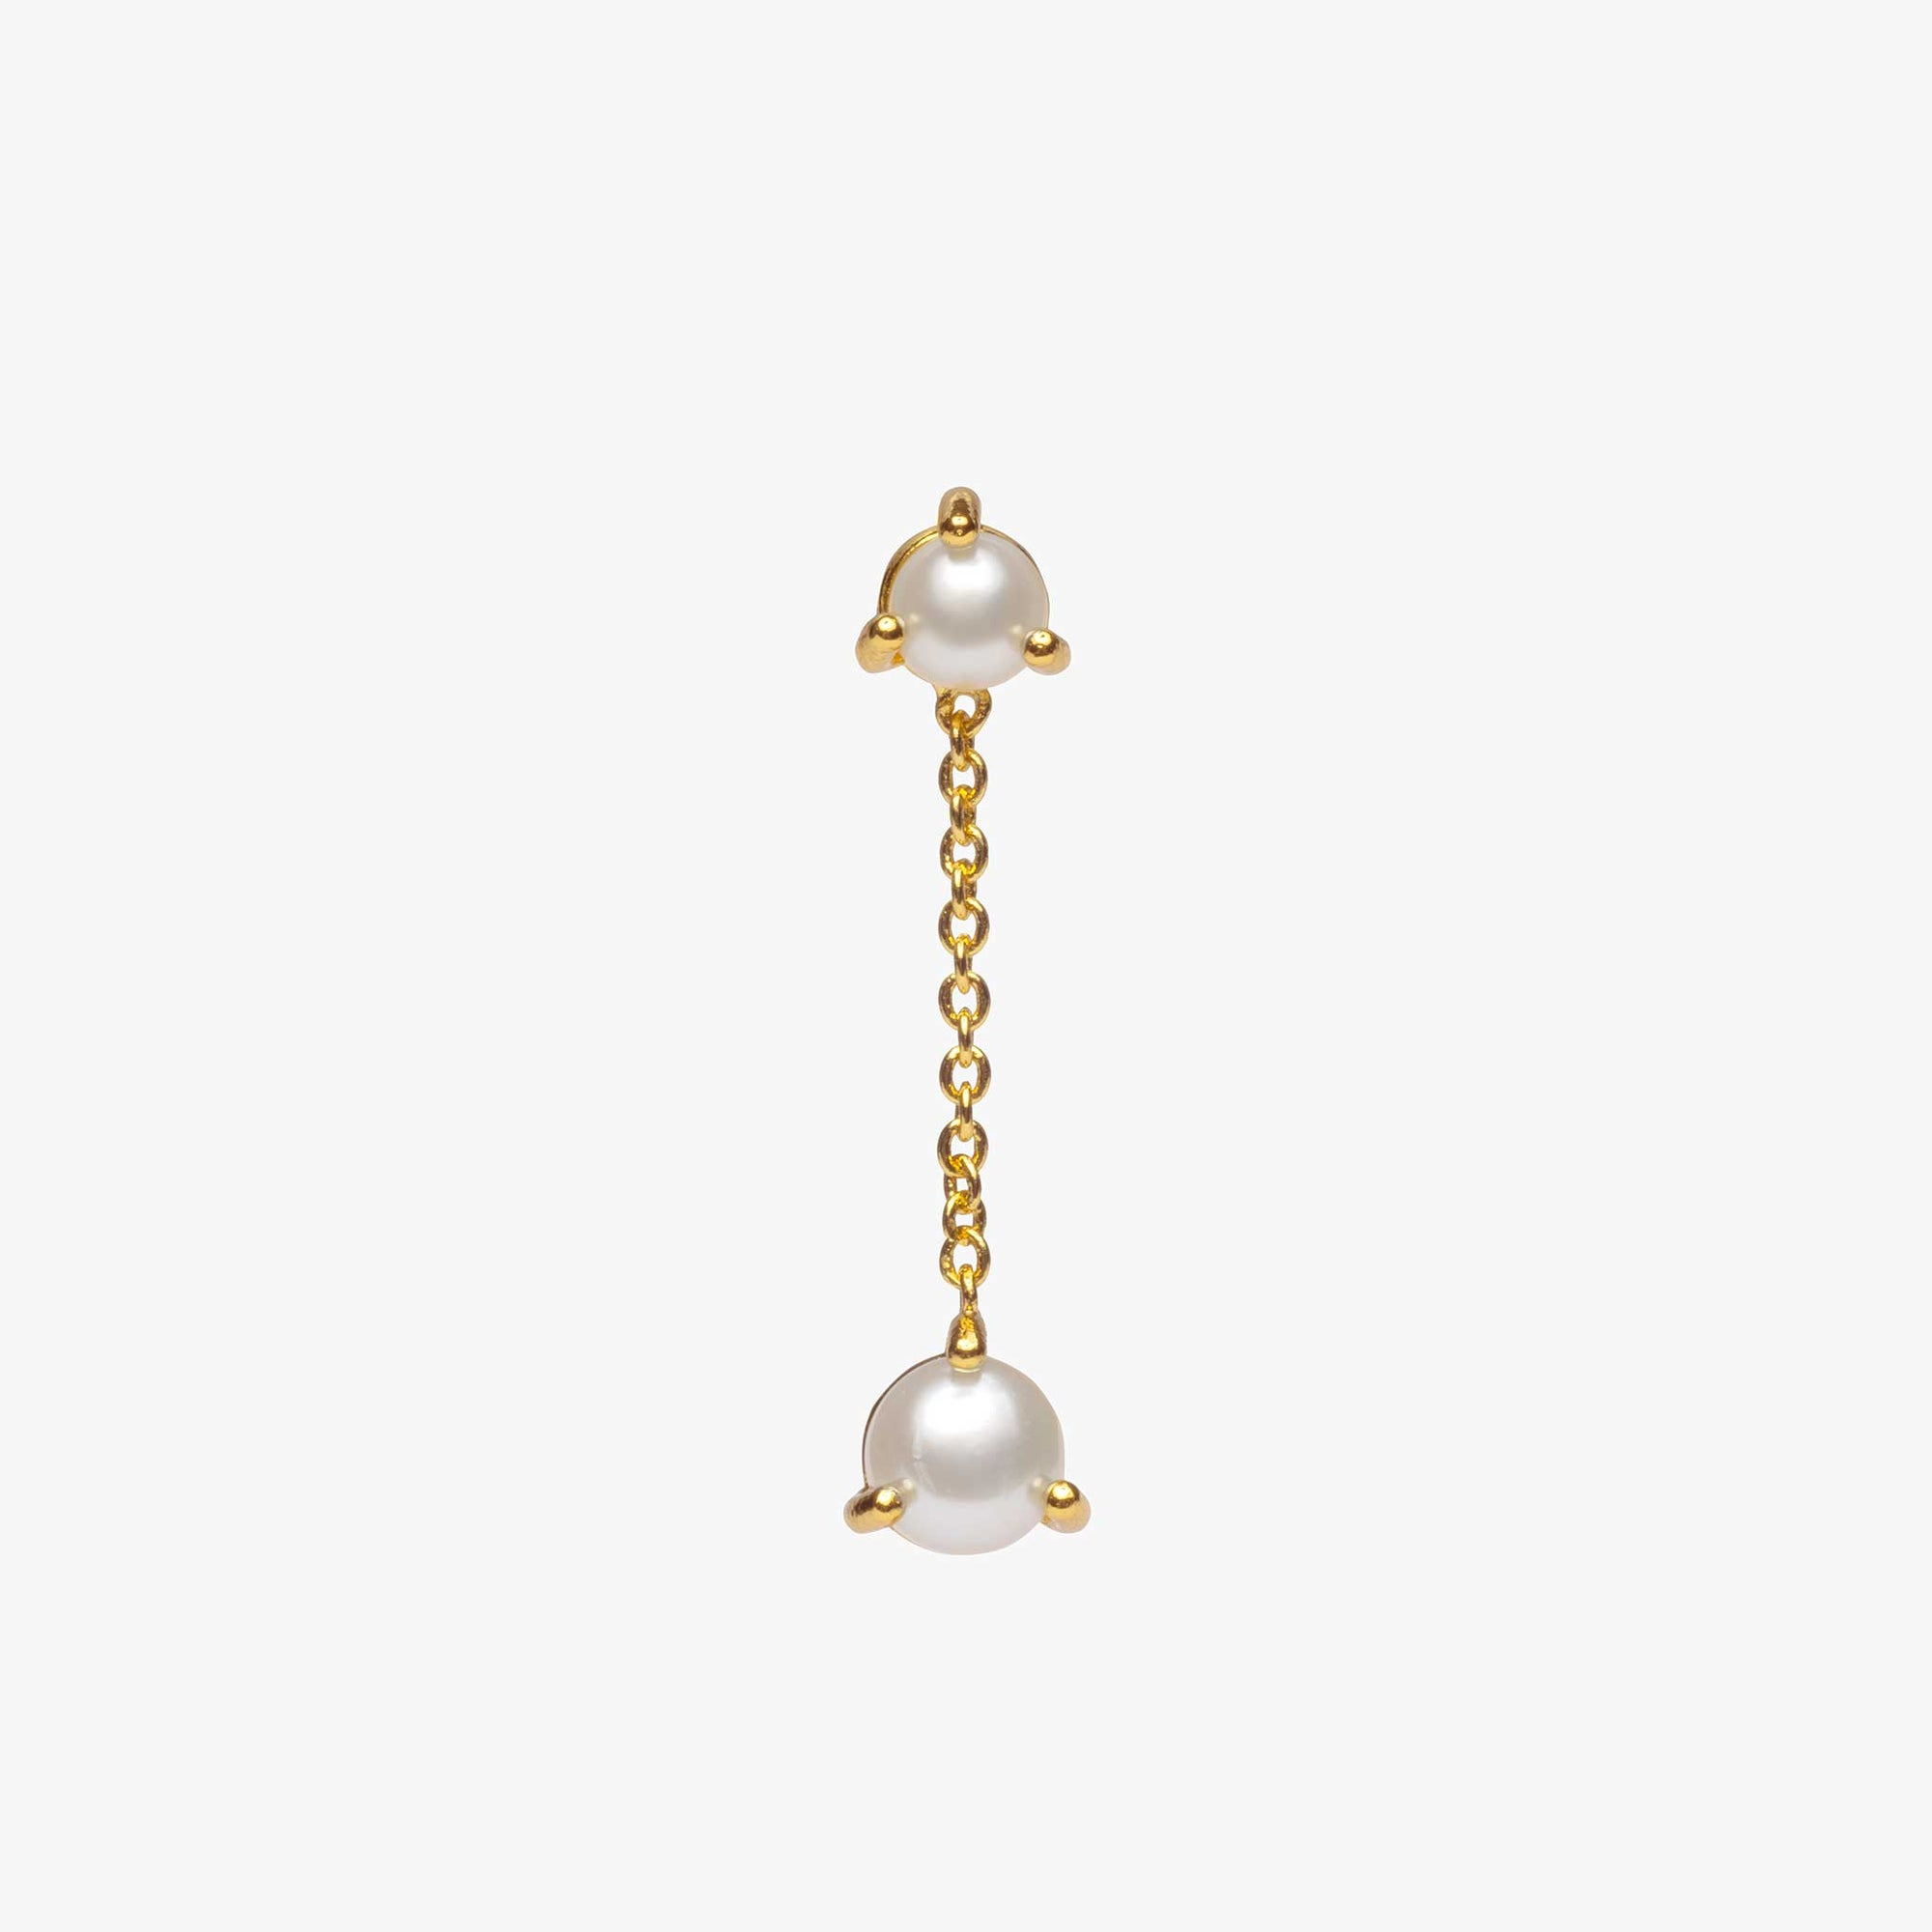 Pearl stud with gold chain dangle and an additional pearl at the end of the dangle chain.